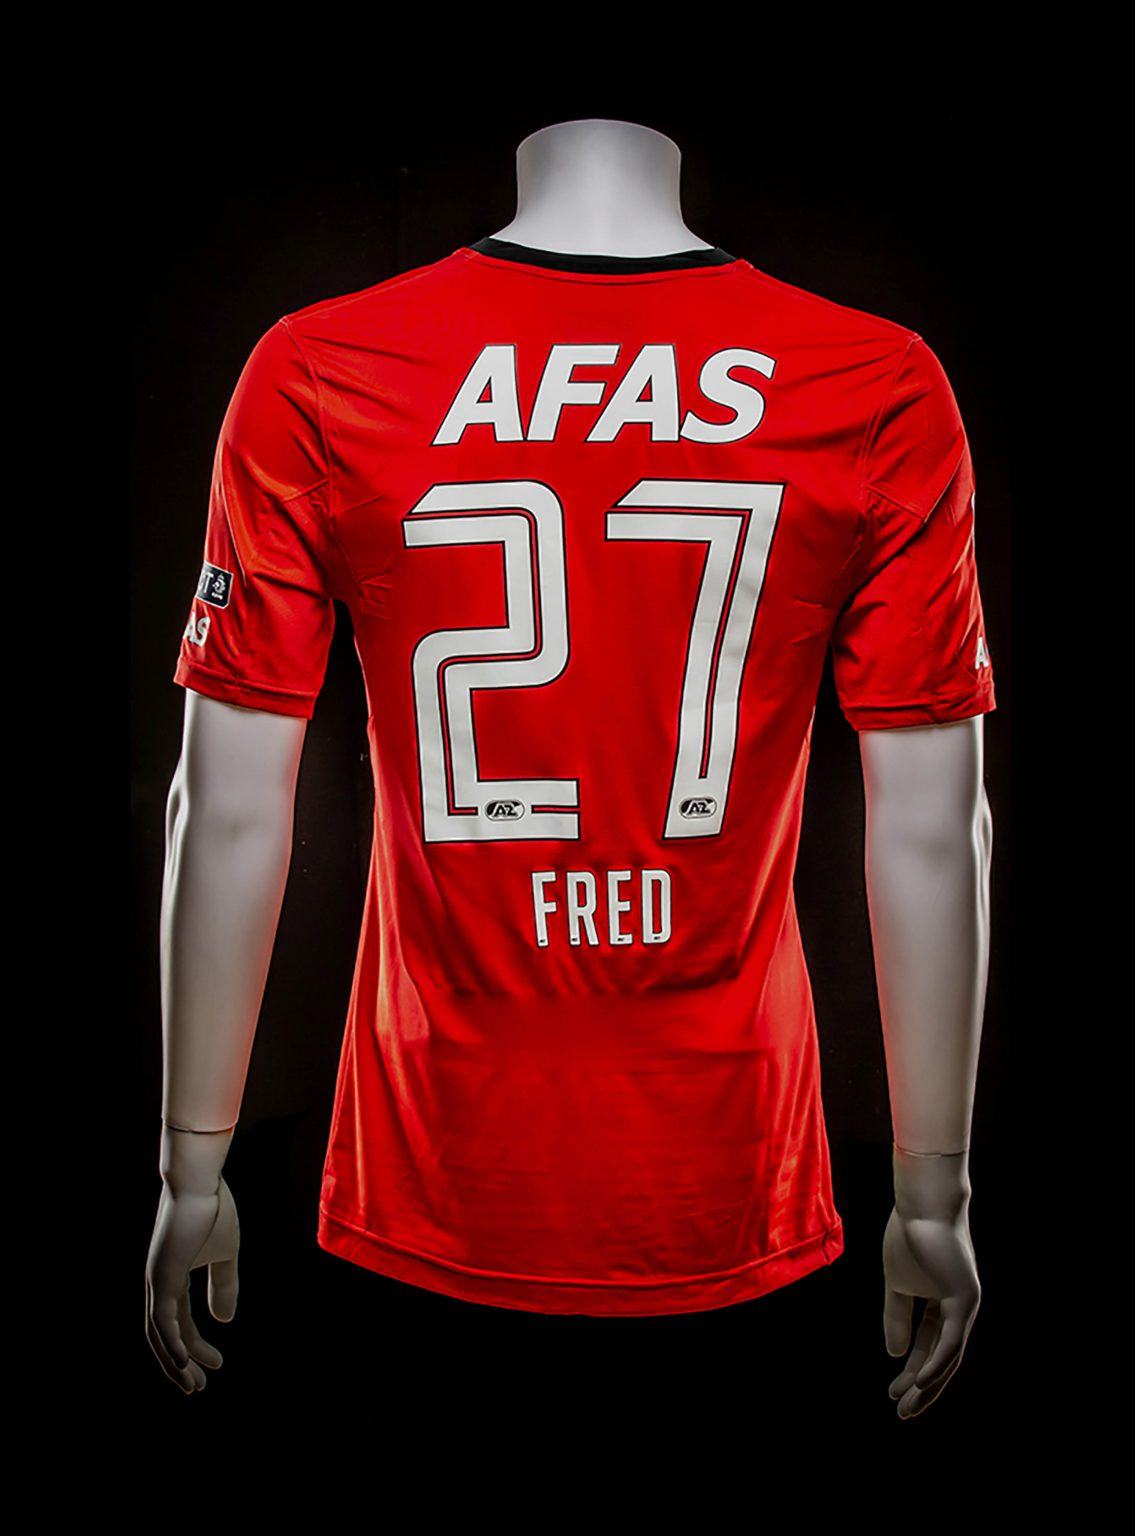 #27 Fred Friday